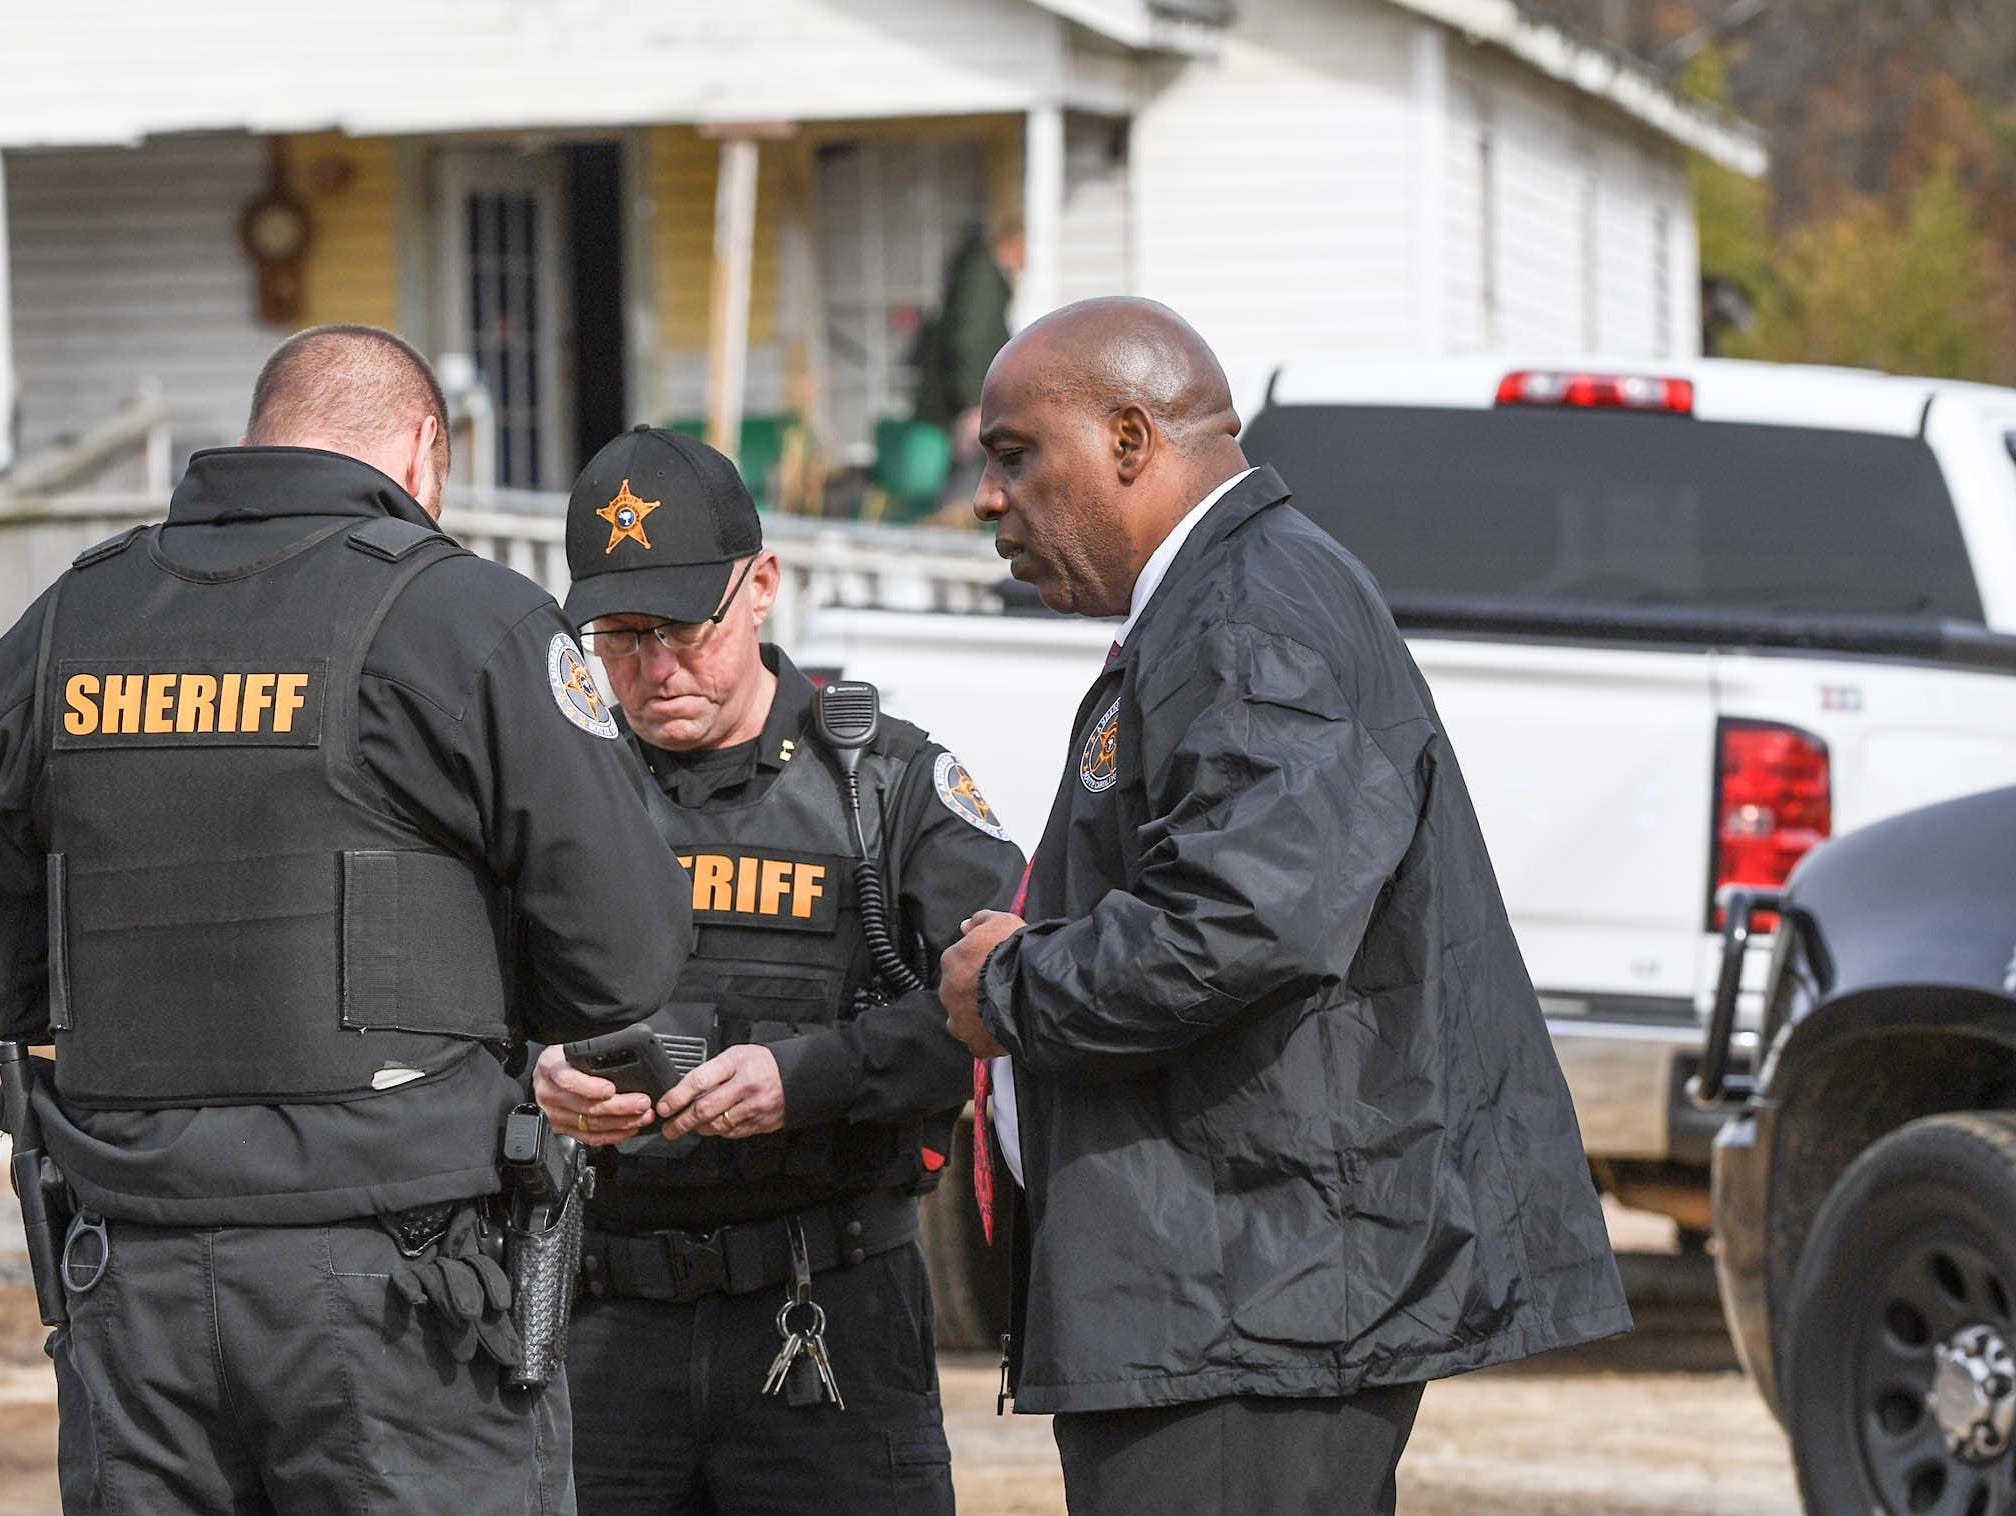 Anderson County Sheriff Capt. Darrell Hill, right, speaks with others who responded to Brazeale Street in Belton after a report that a man struck an officer serving a warrant at a house Wednesday, December 12, 2018.